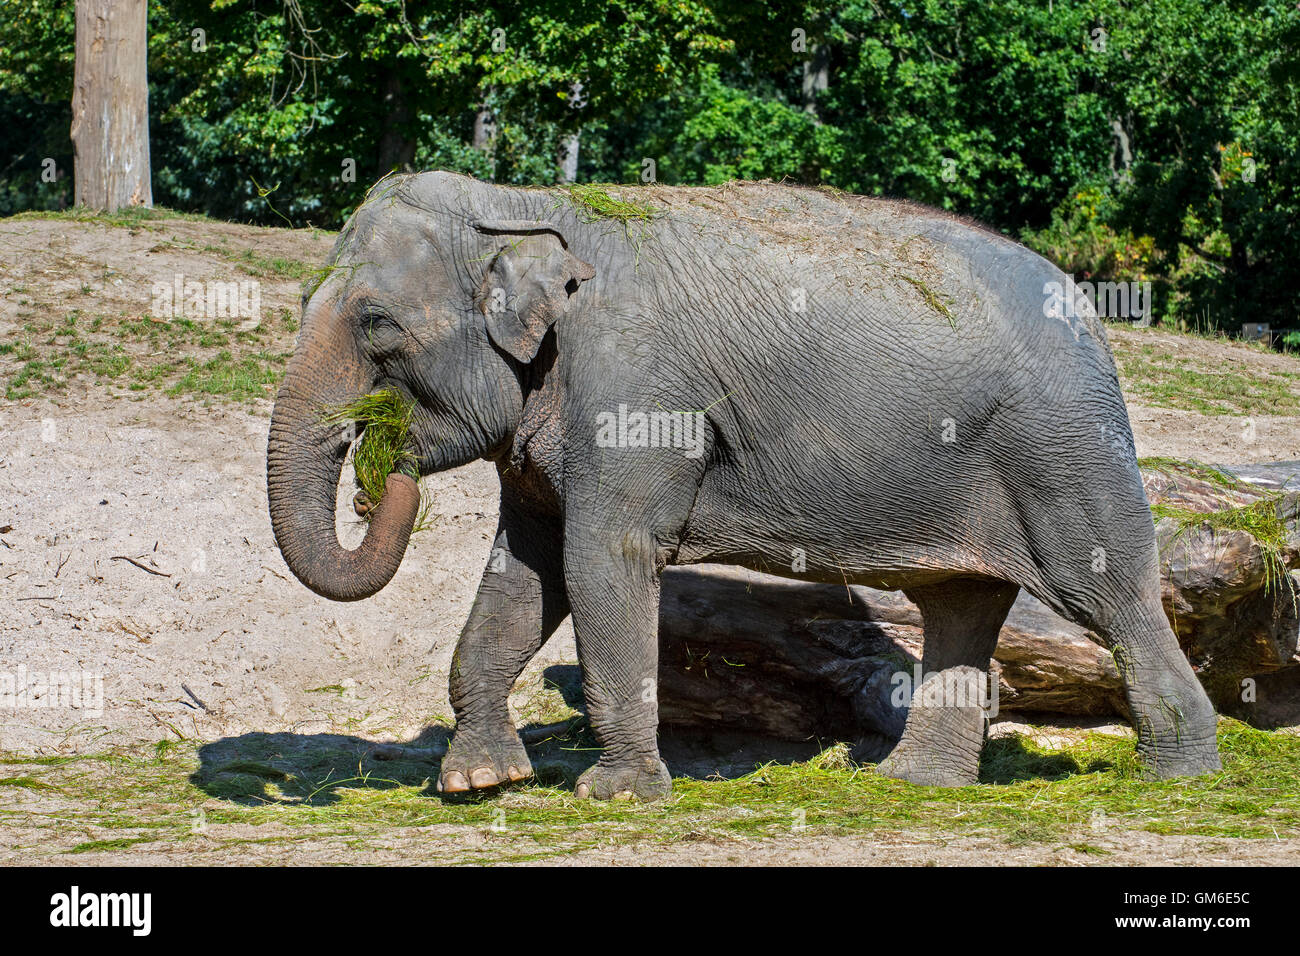 Asian elephant / Asiatic elephant (Elephas maximus) eating grass during feeding time in zoo - Stock Image